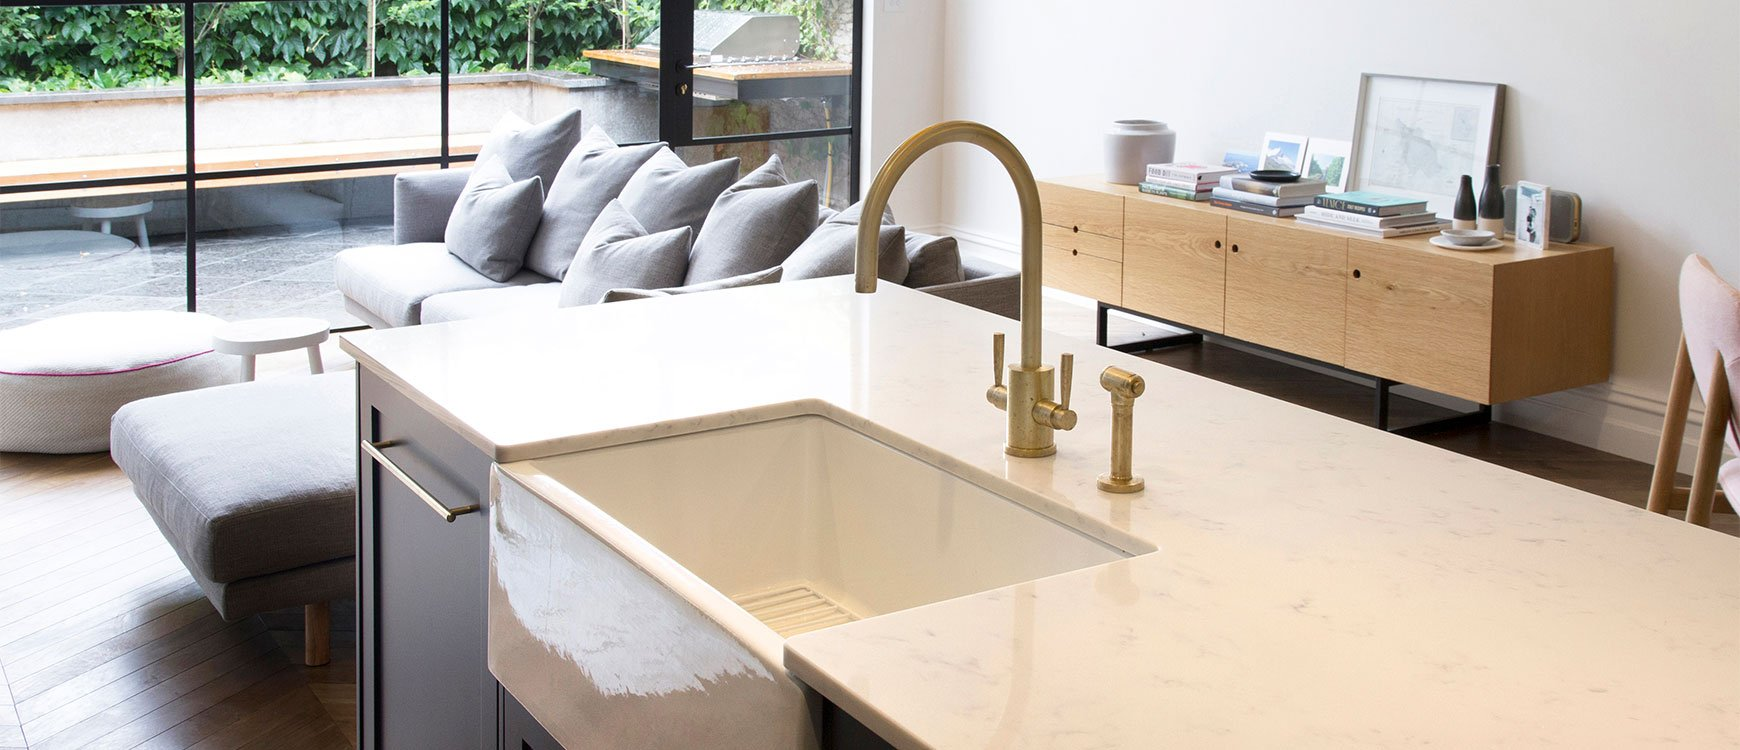 Kitchen sink with matching black glass tap landing and sliding cover - Should I Choose A Spray Rinse Tap